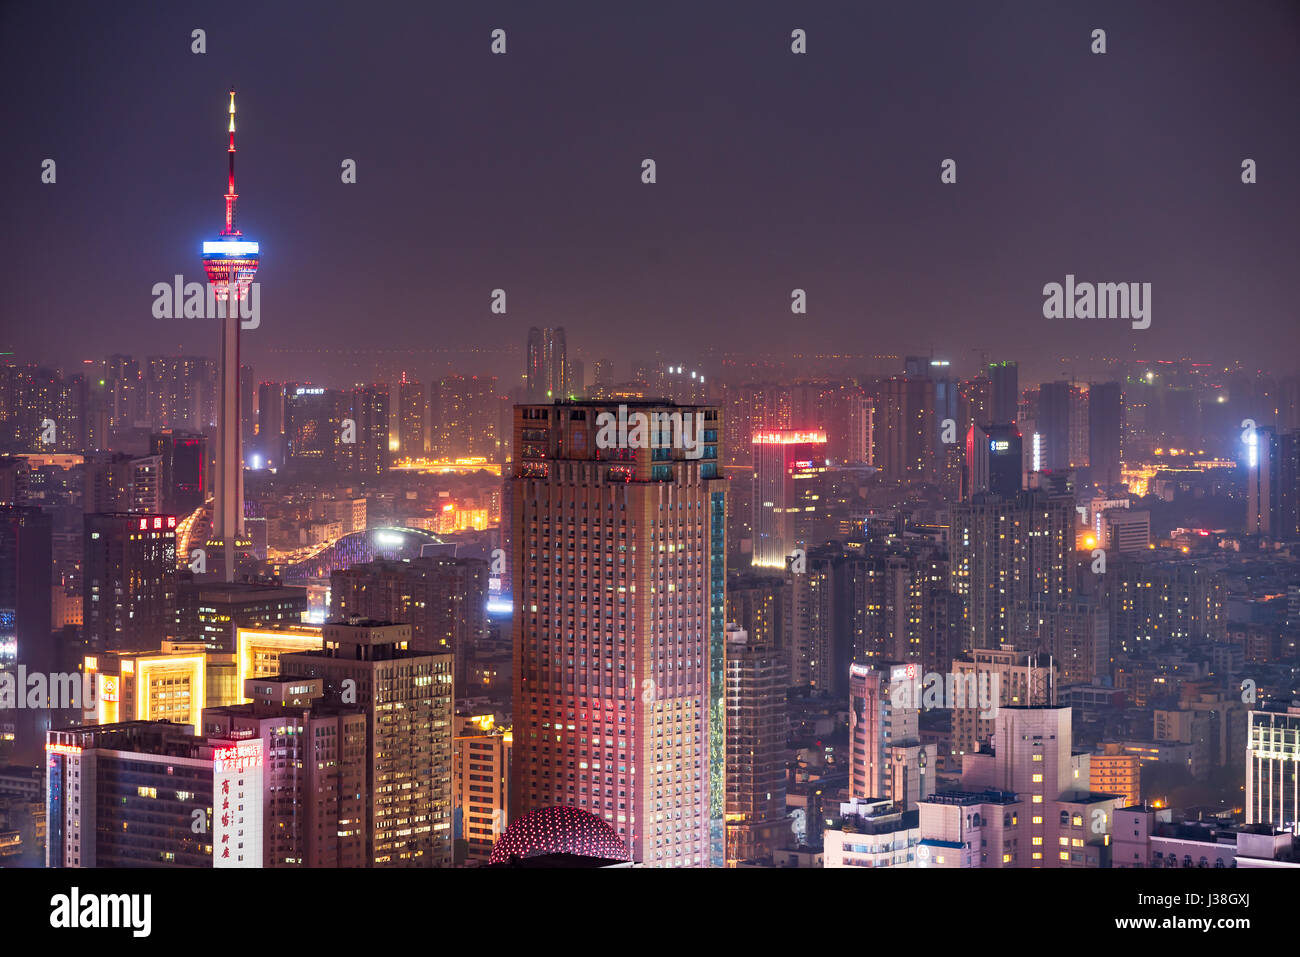 Chengdu, Sichuan Province, China - Apr 9, 2017:  Sichuan TV tower and buildings aerial view at night - Stock Image